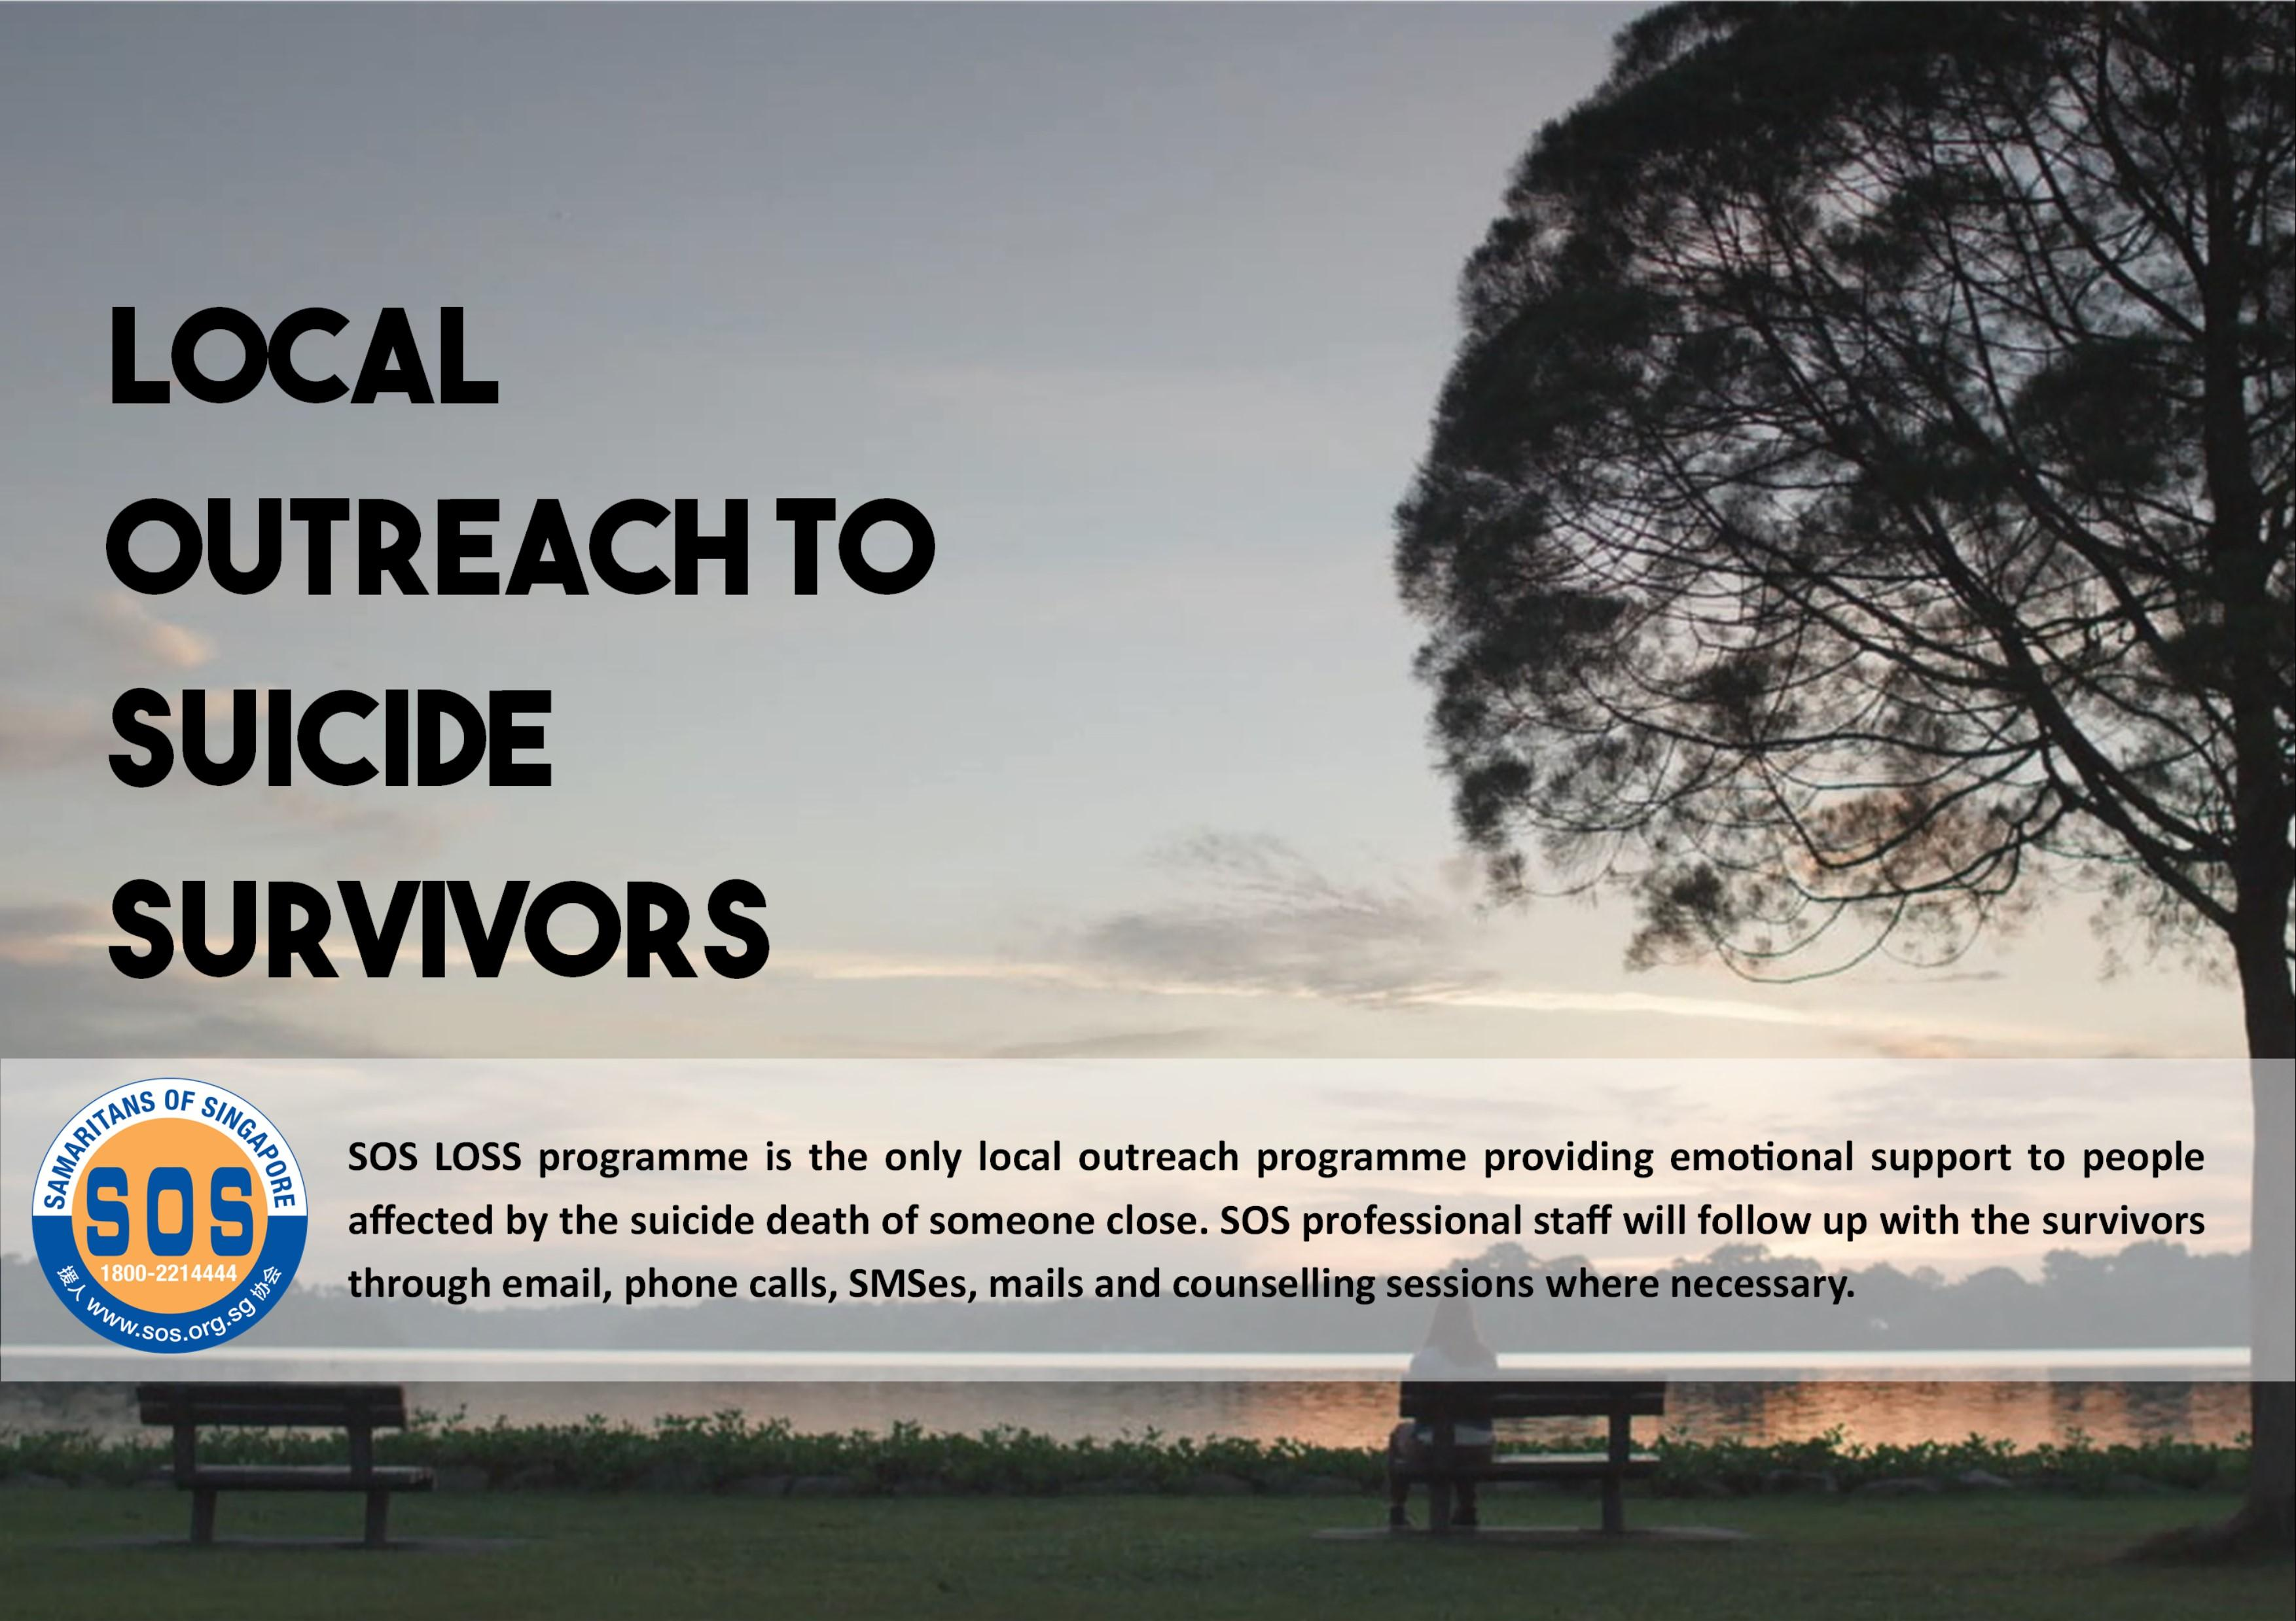 Local Outreach to Suicide Survivors (LOSS) - Giving sg